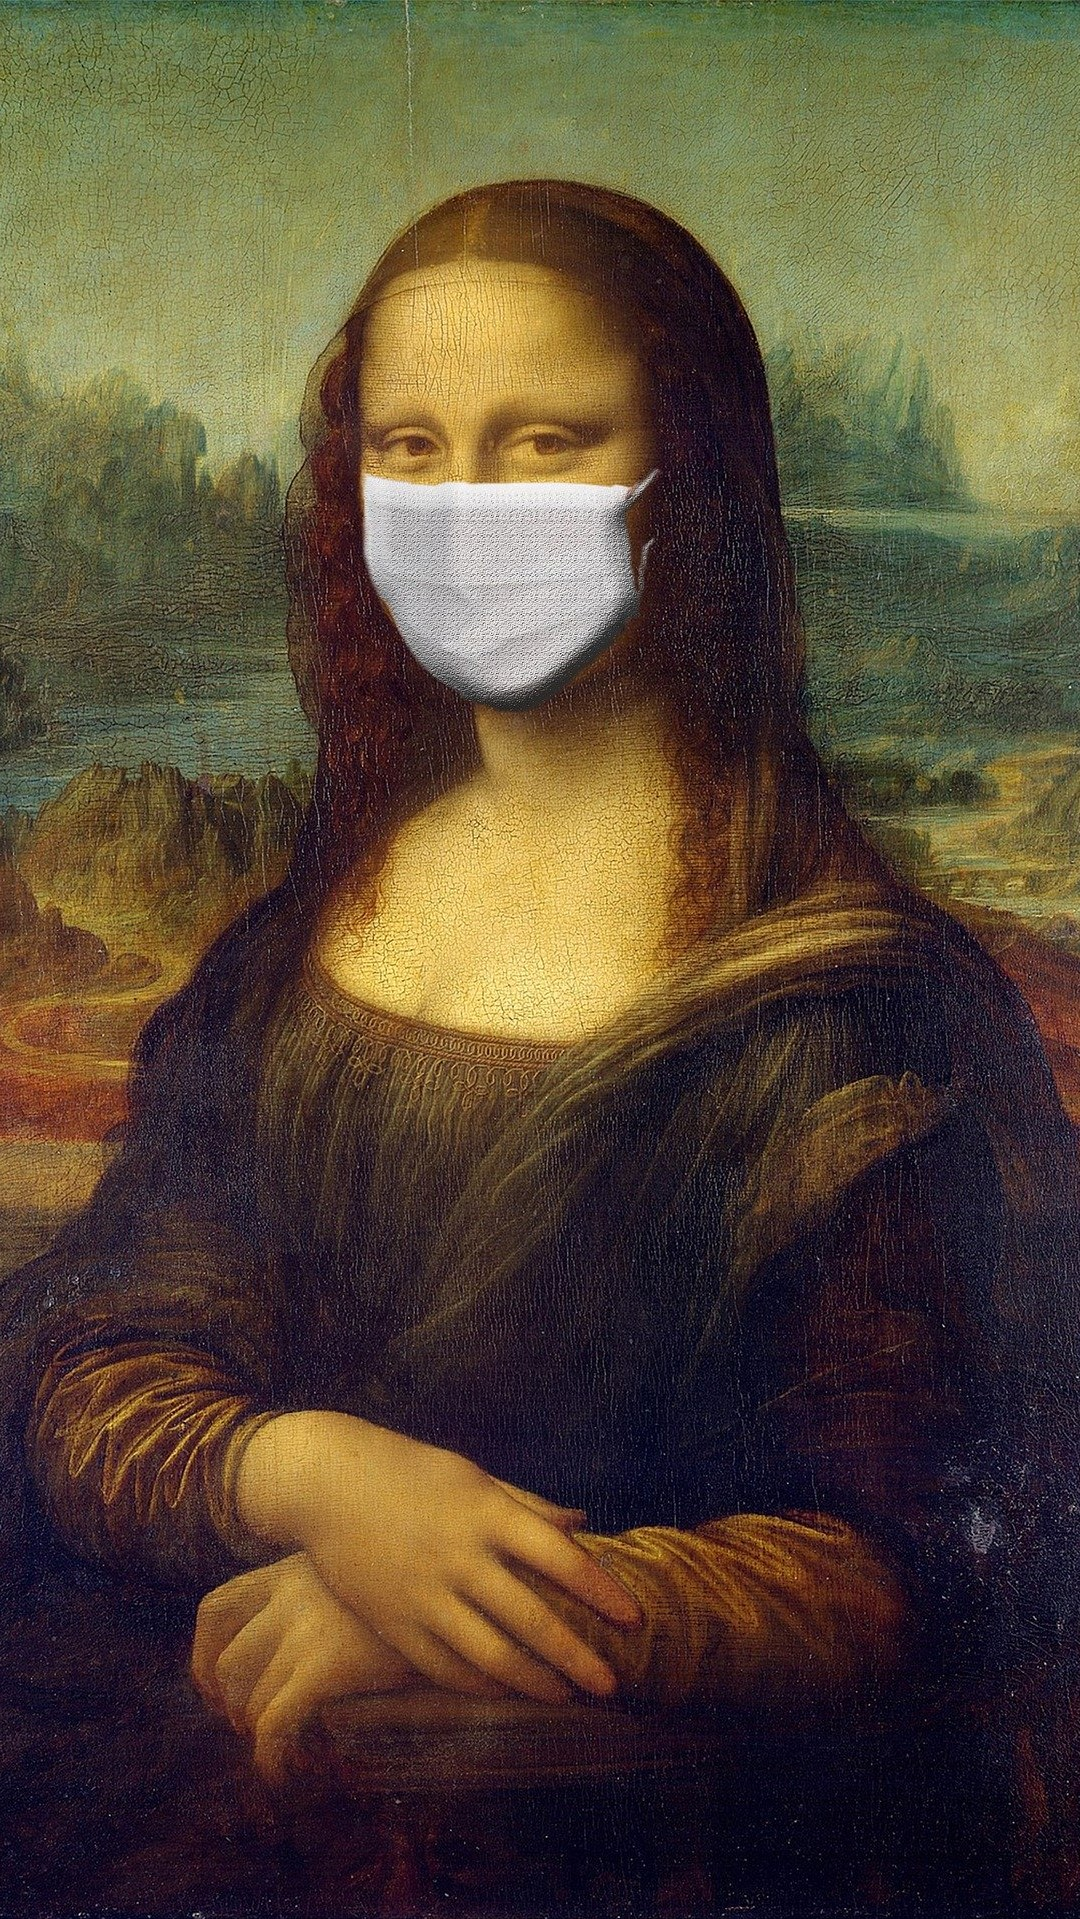 Mona Lisa with mask covid19 - wallpaper 1080p | Wallpaperize